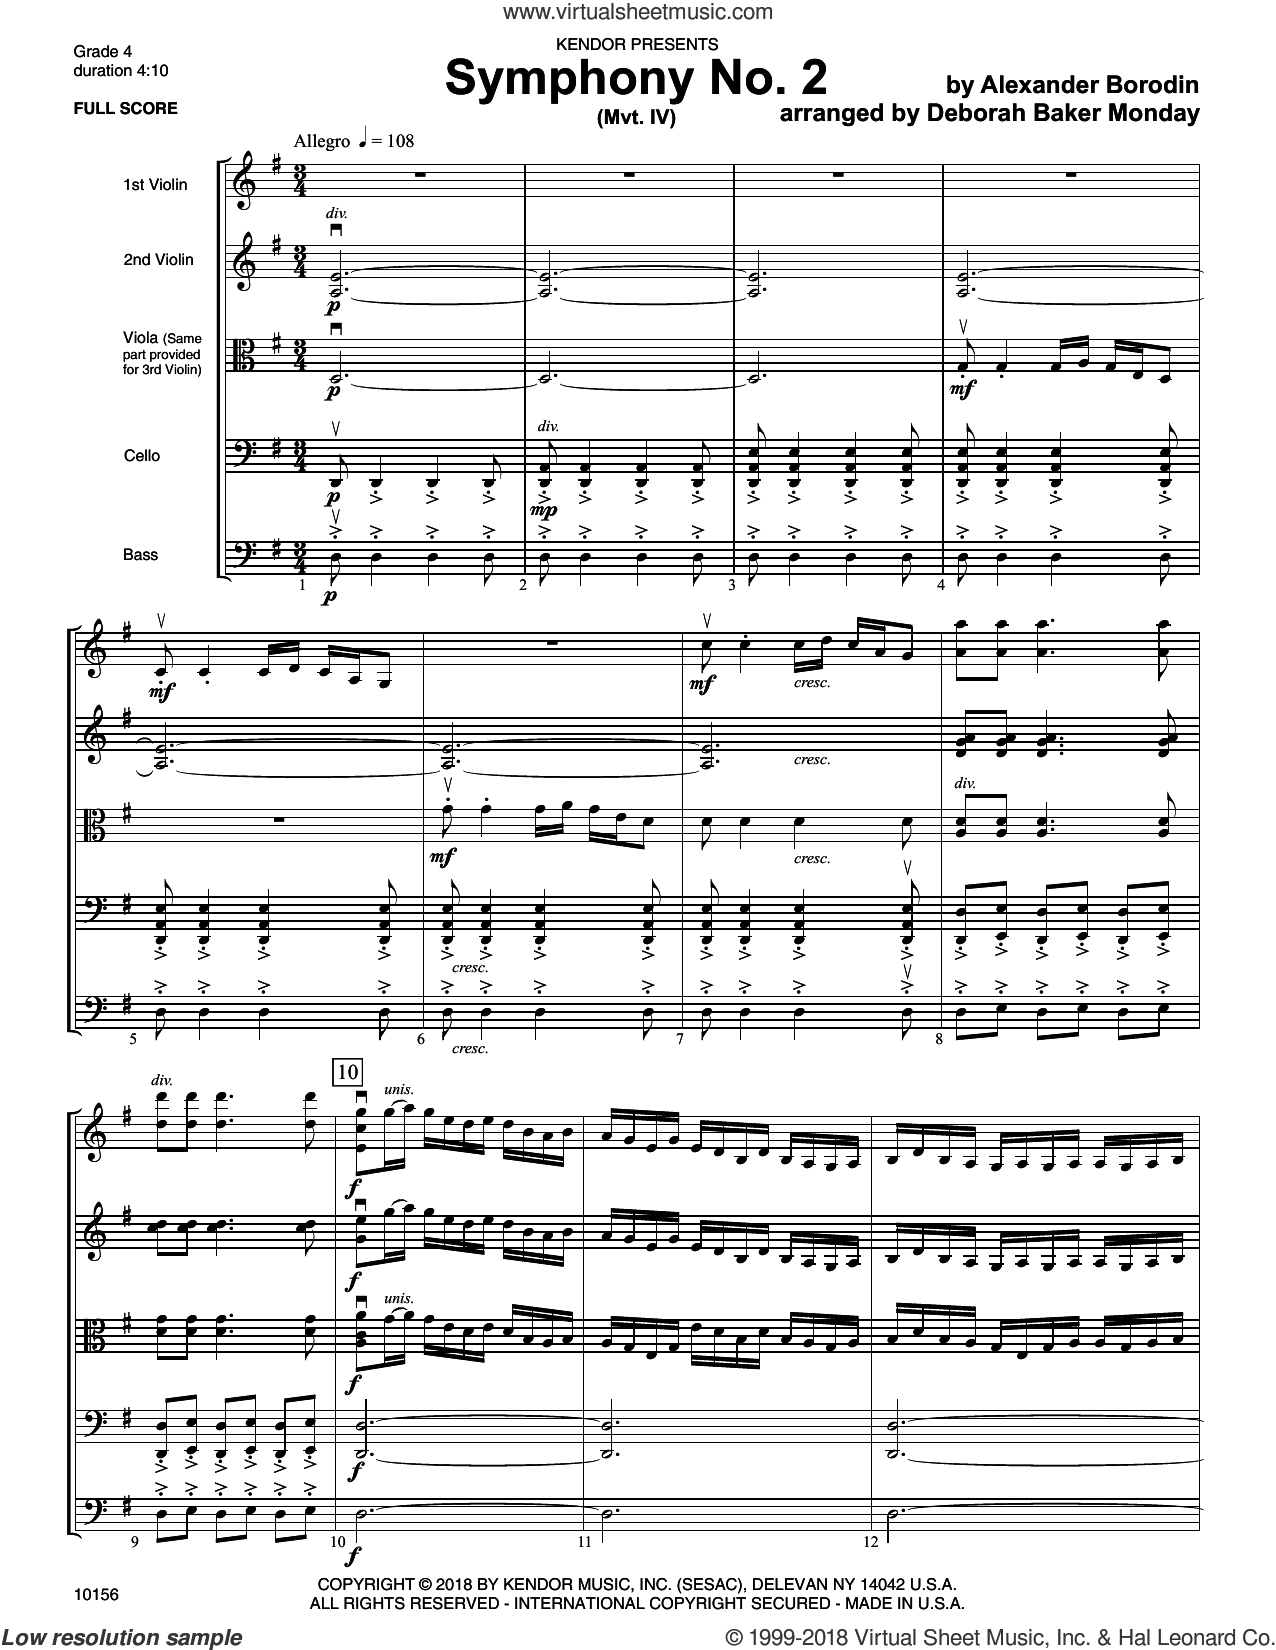 Symphony No. 2 (Mvt. IV) (COMPLETE) sheet music for orchestra by Deborah Baker Monday and Alexander Borodin, classical score, intermediate skill level